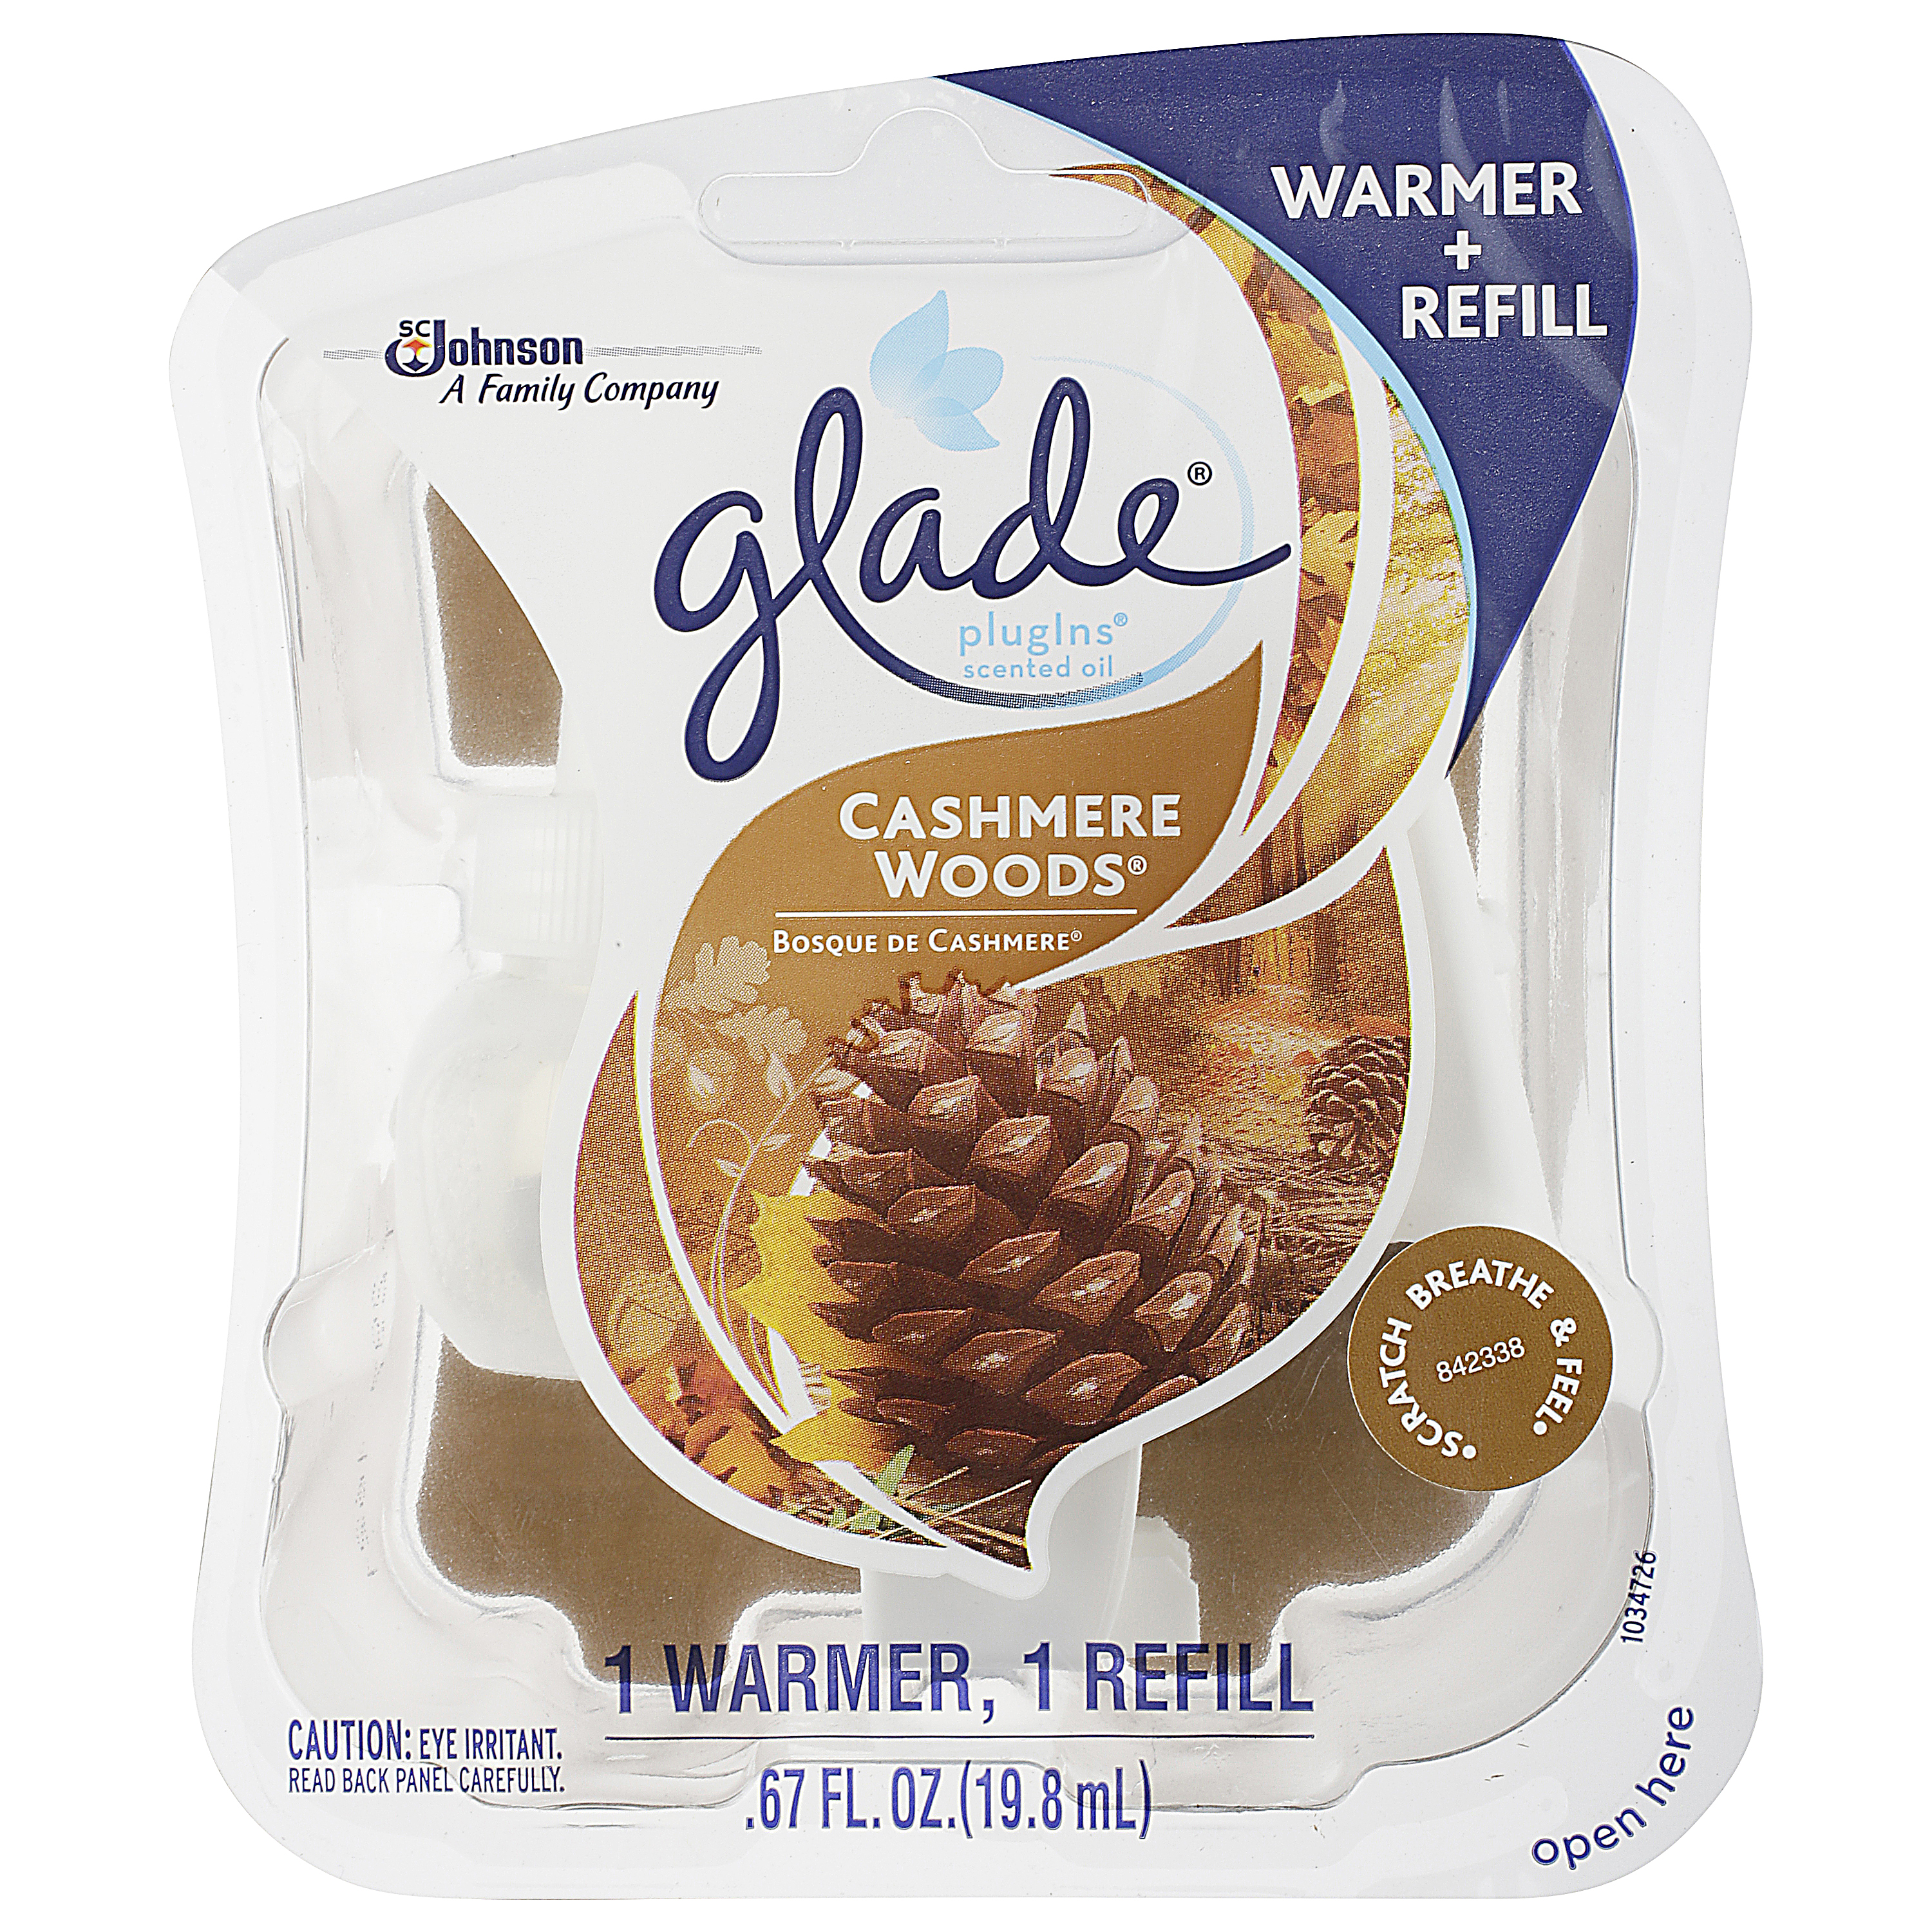 Glade Plugins Warmer Plus Refill, Cashmere Woods